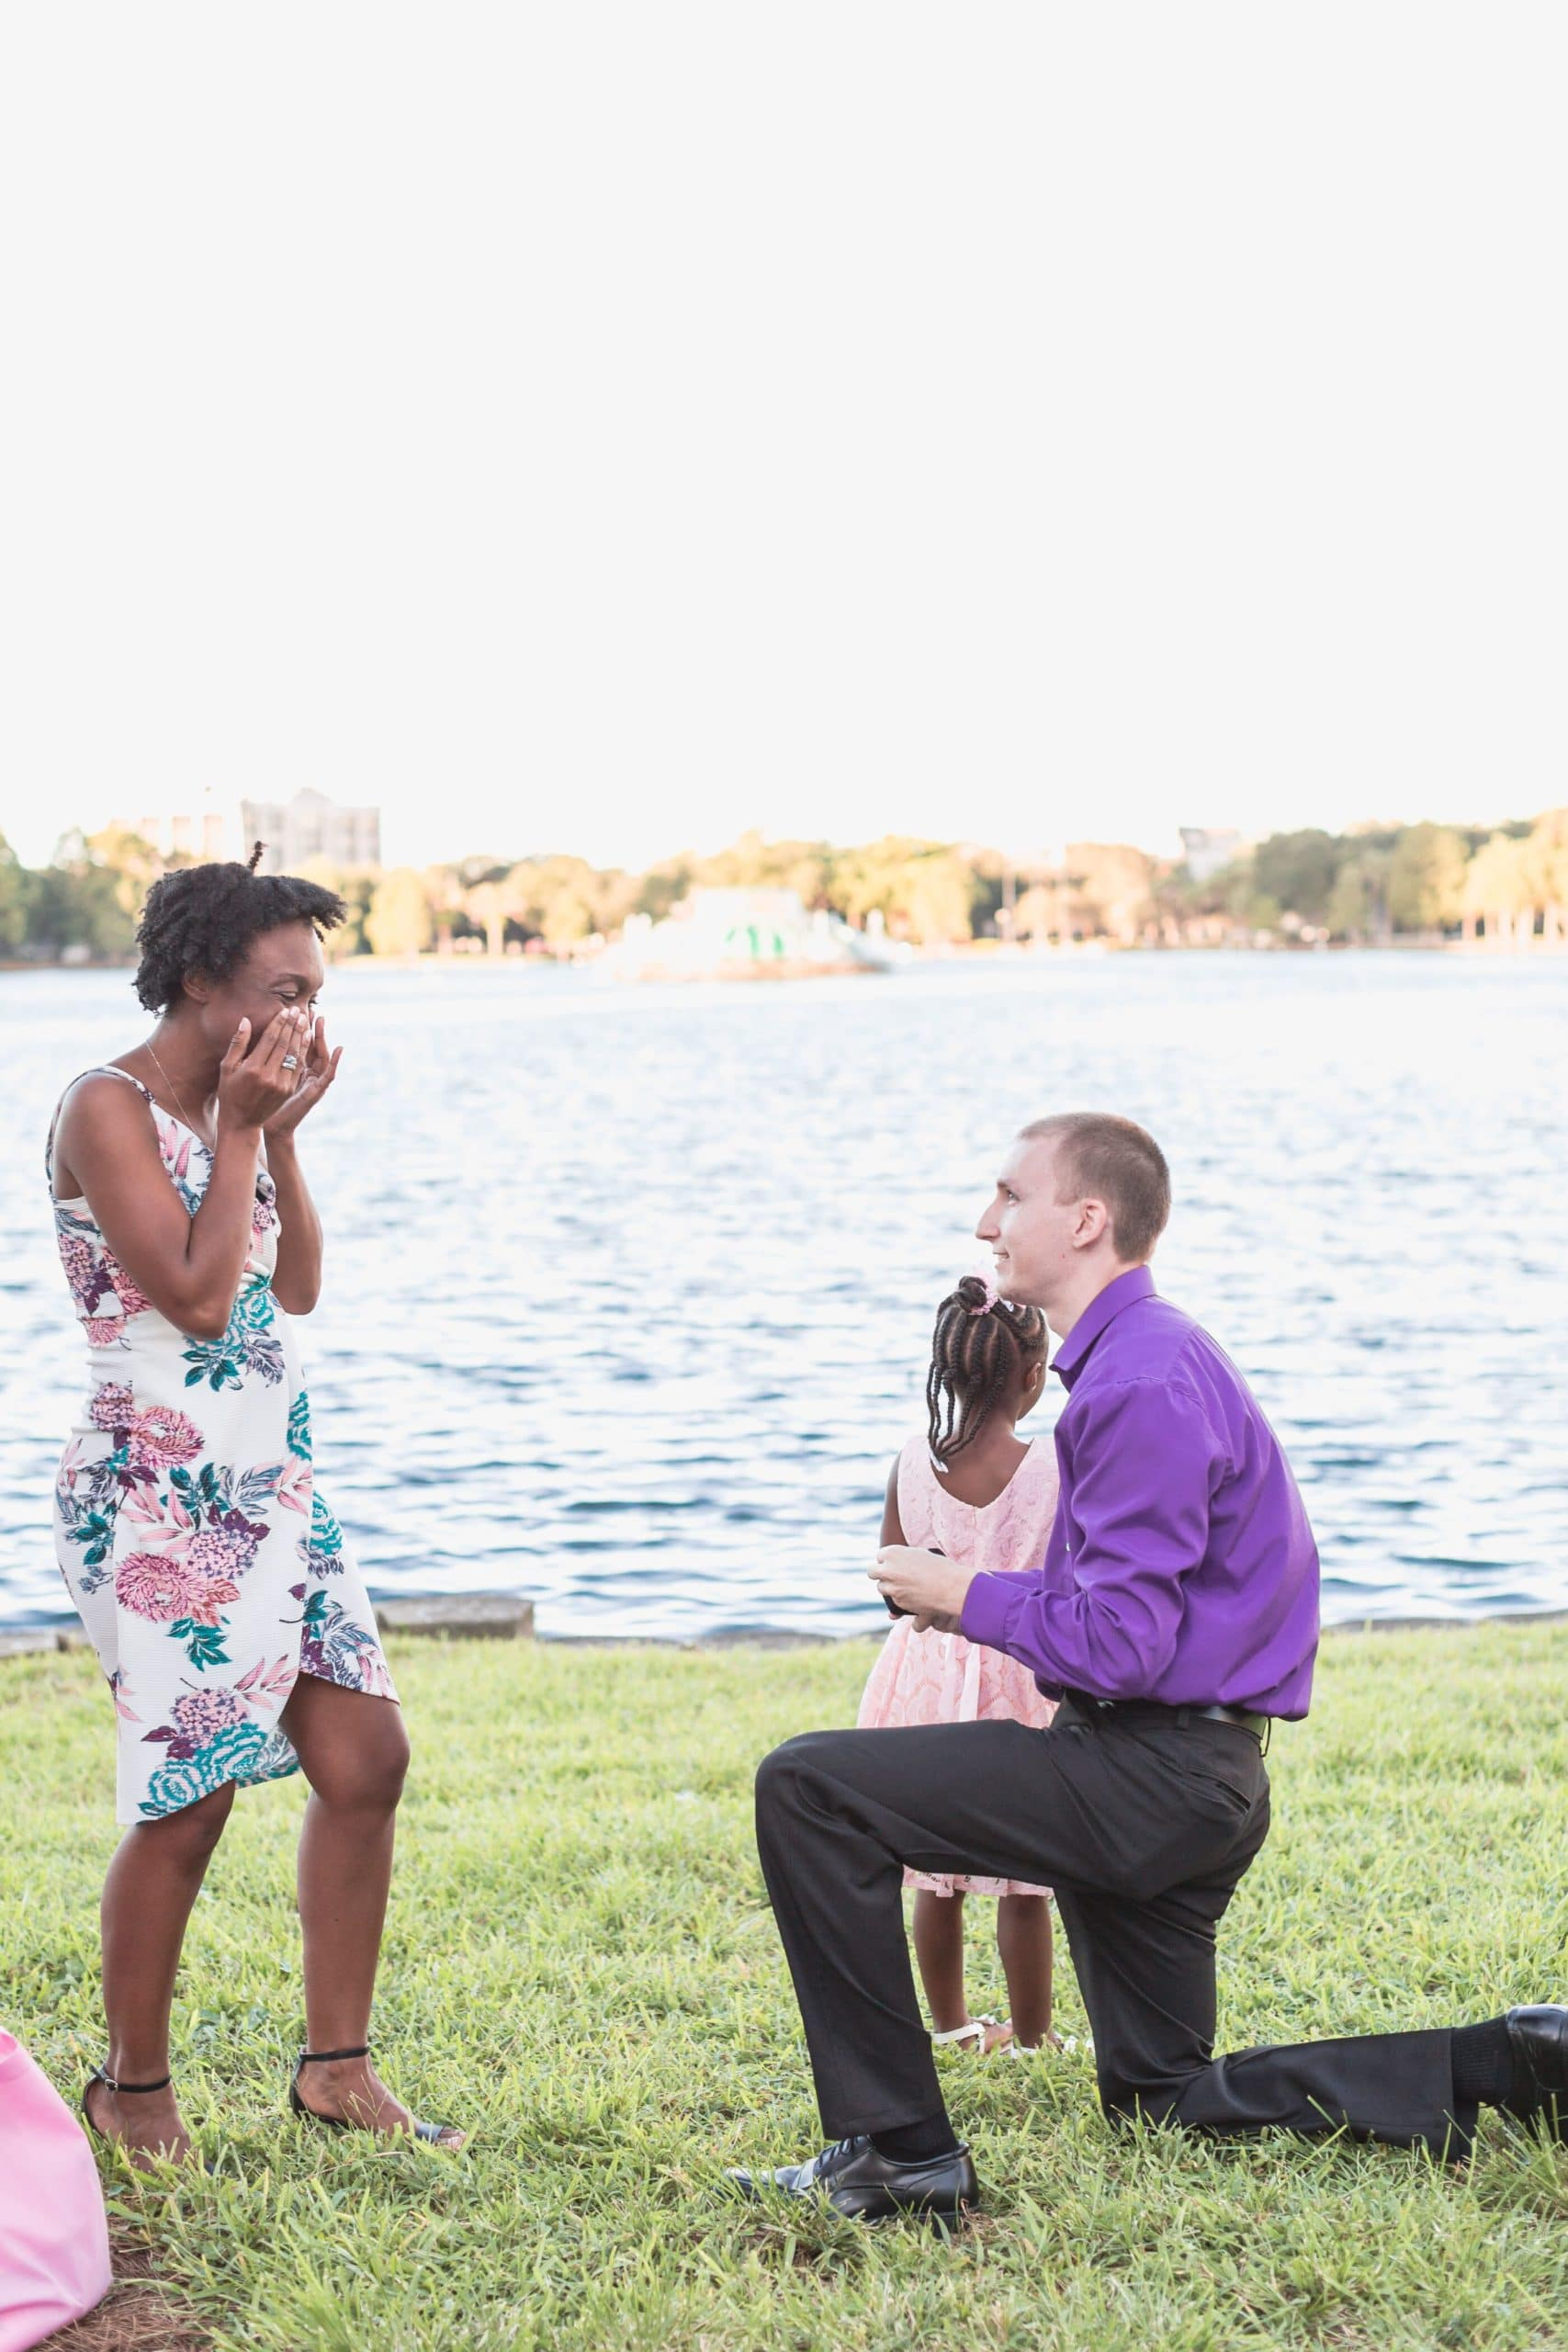 man in purple shirt on bended knee in front of lake proposing to woman in floral dress